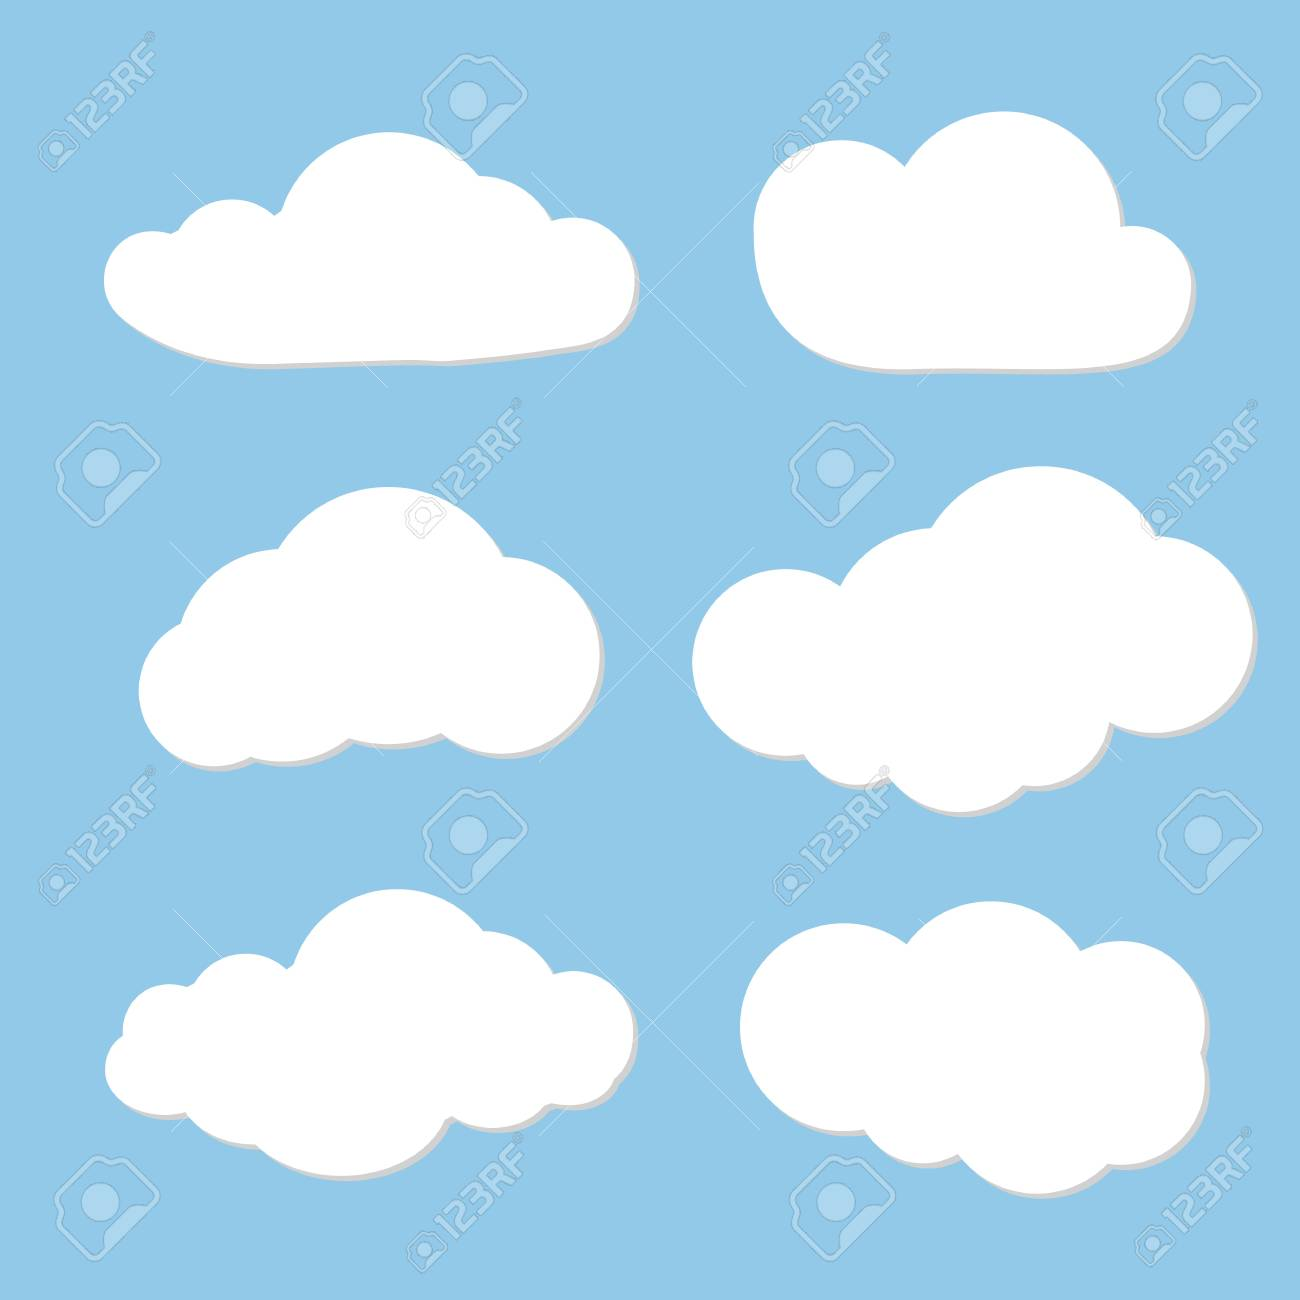 cloud vector design can use as speech clouds for network cloud rh 123rf com cloud vector icon cloud vector editor